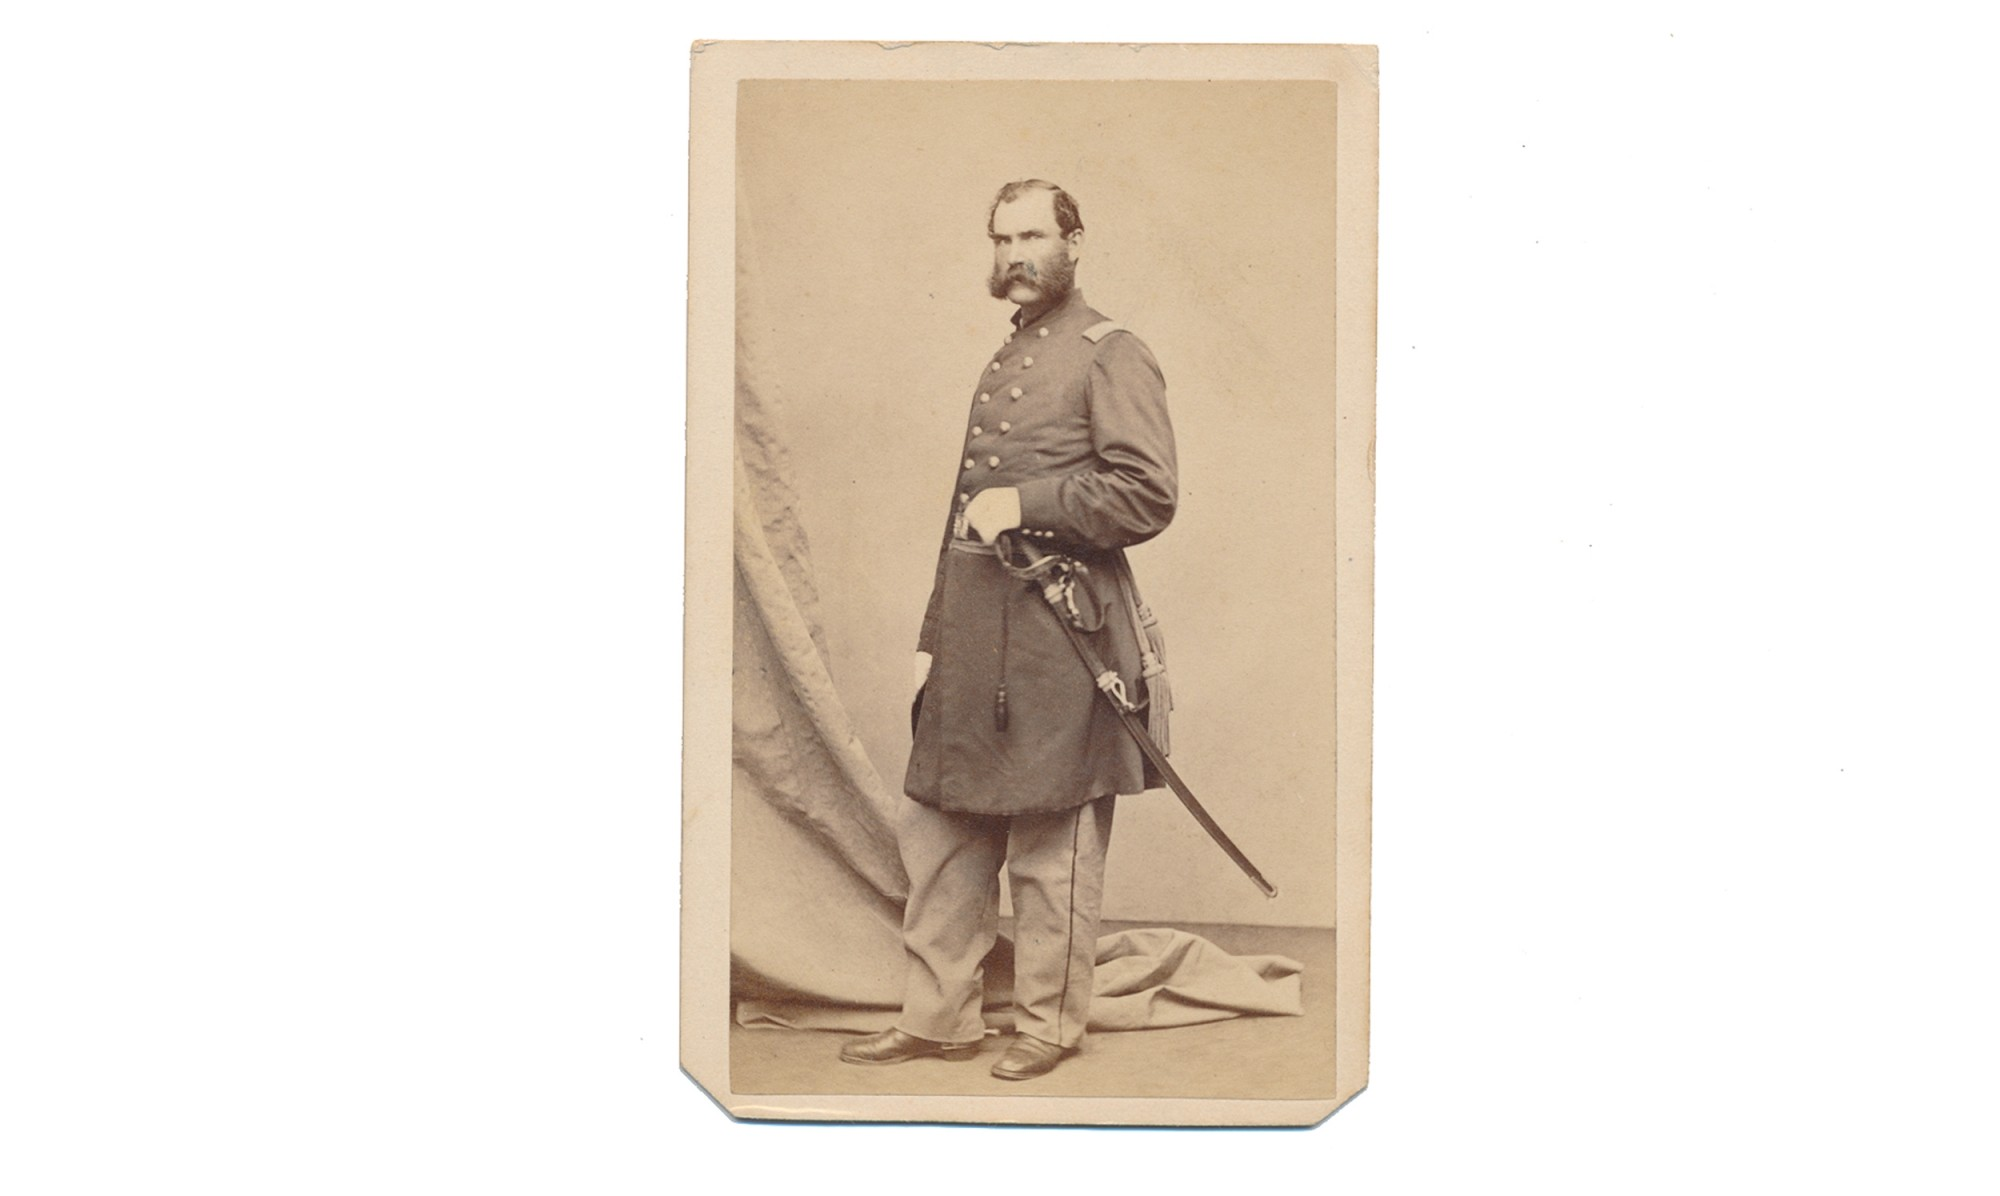 CDV OF US COLONEL ALBERT S. FOLLANSBEE, 6th MASSACHUSETTS INFANTRY